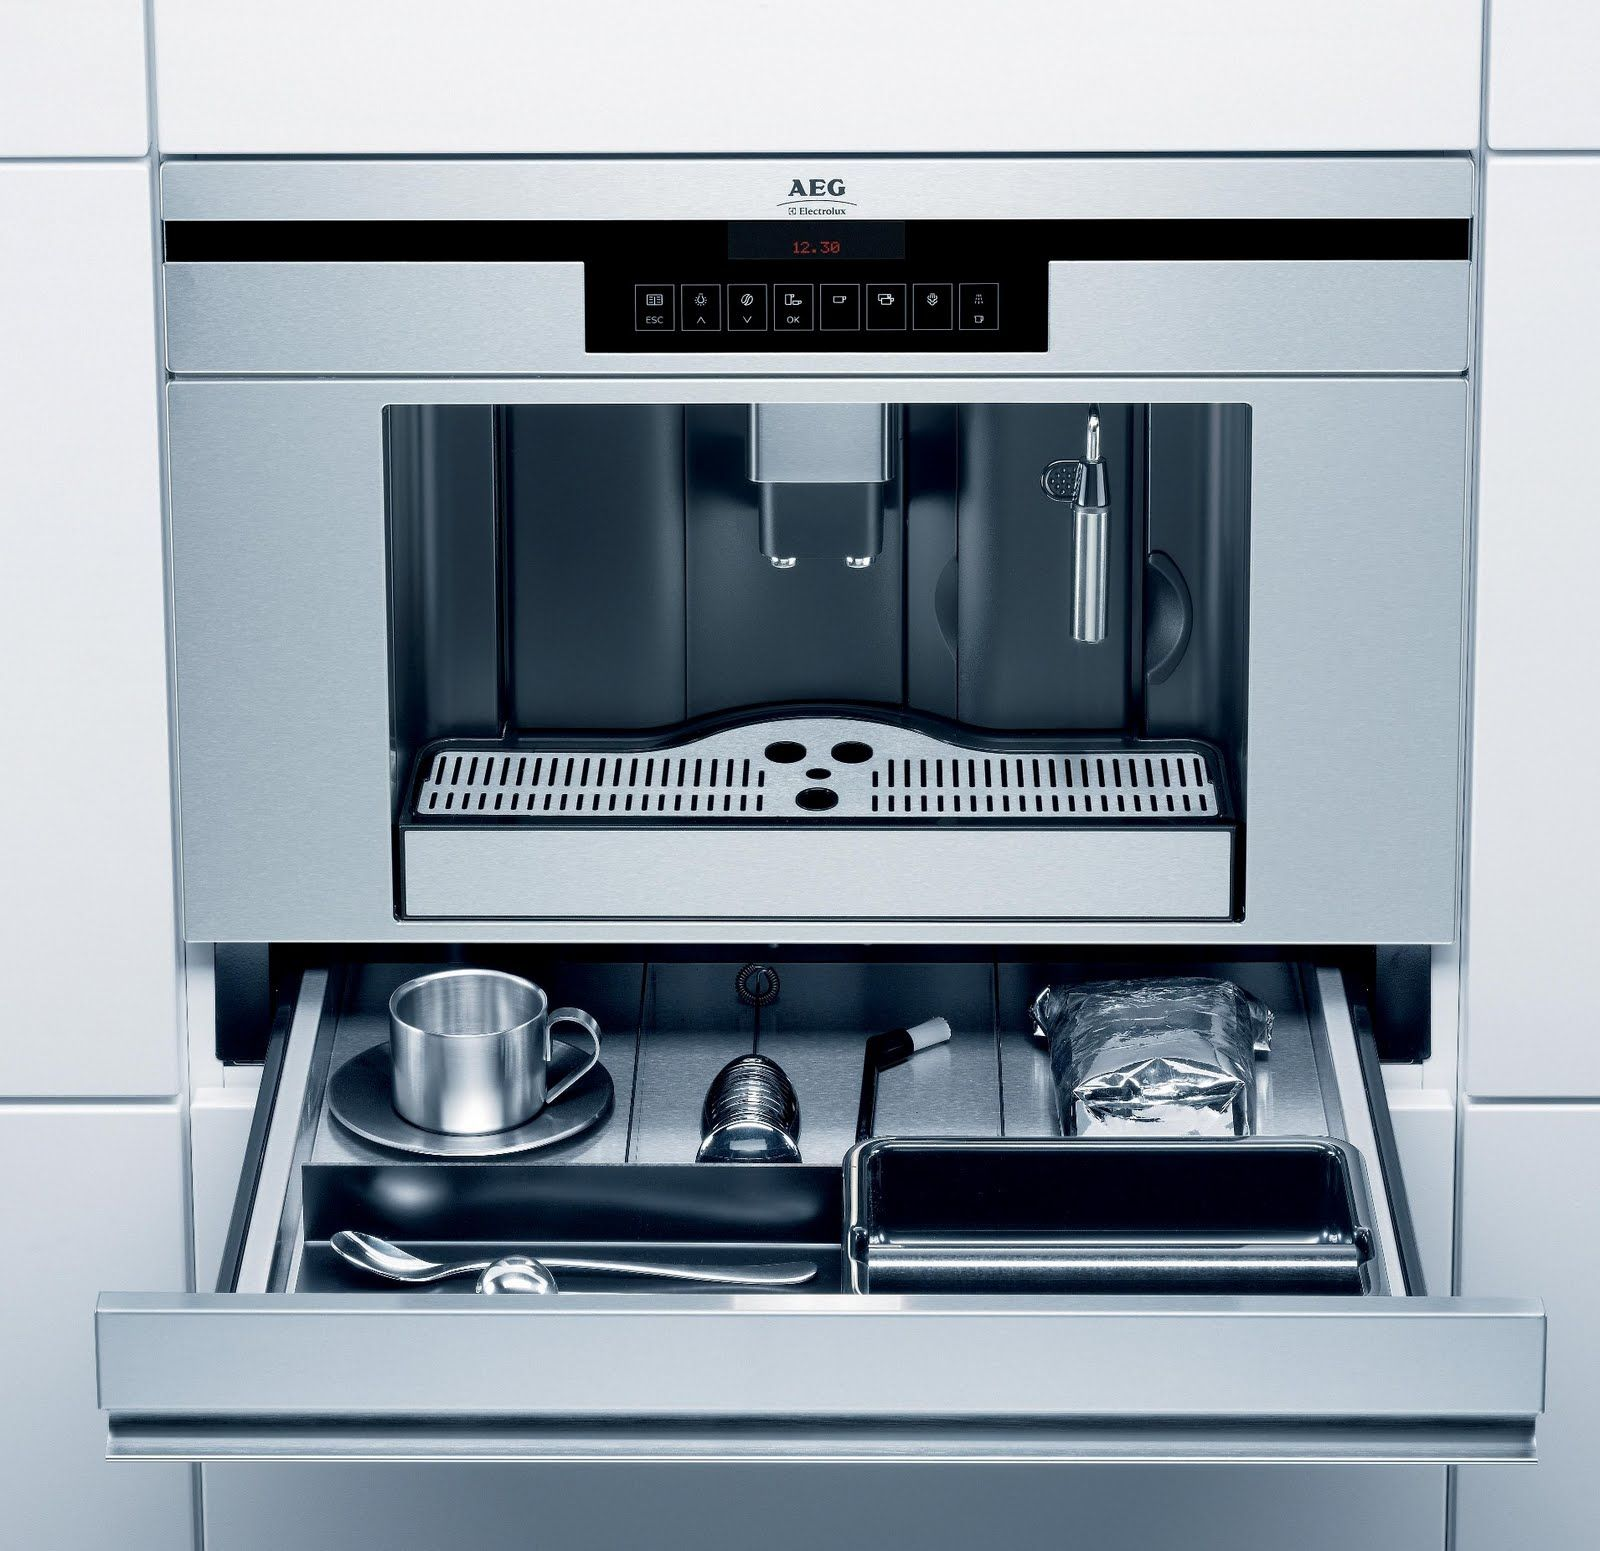 Medium image of aeg electrolux pe3810 m fully integrated coffee maker